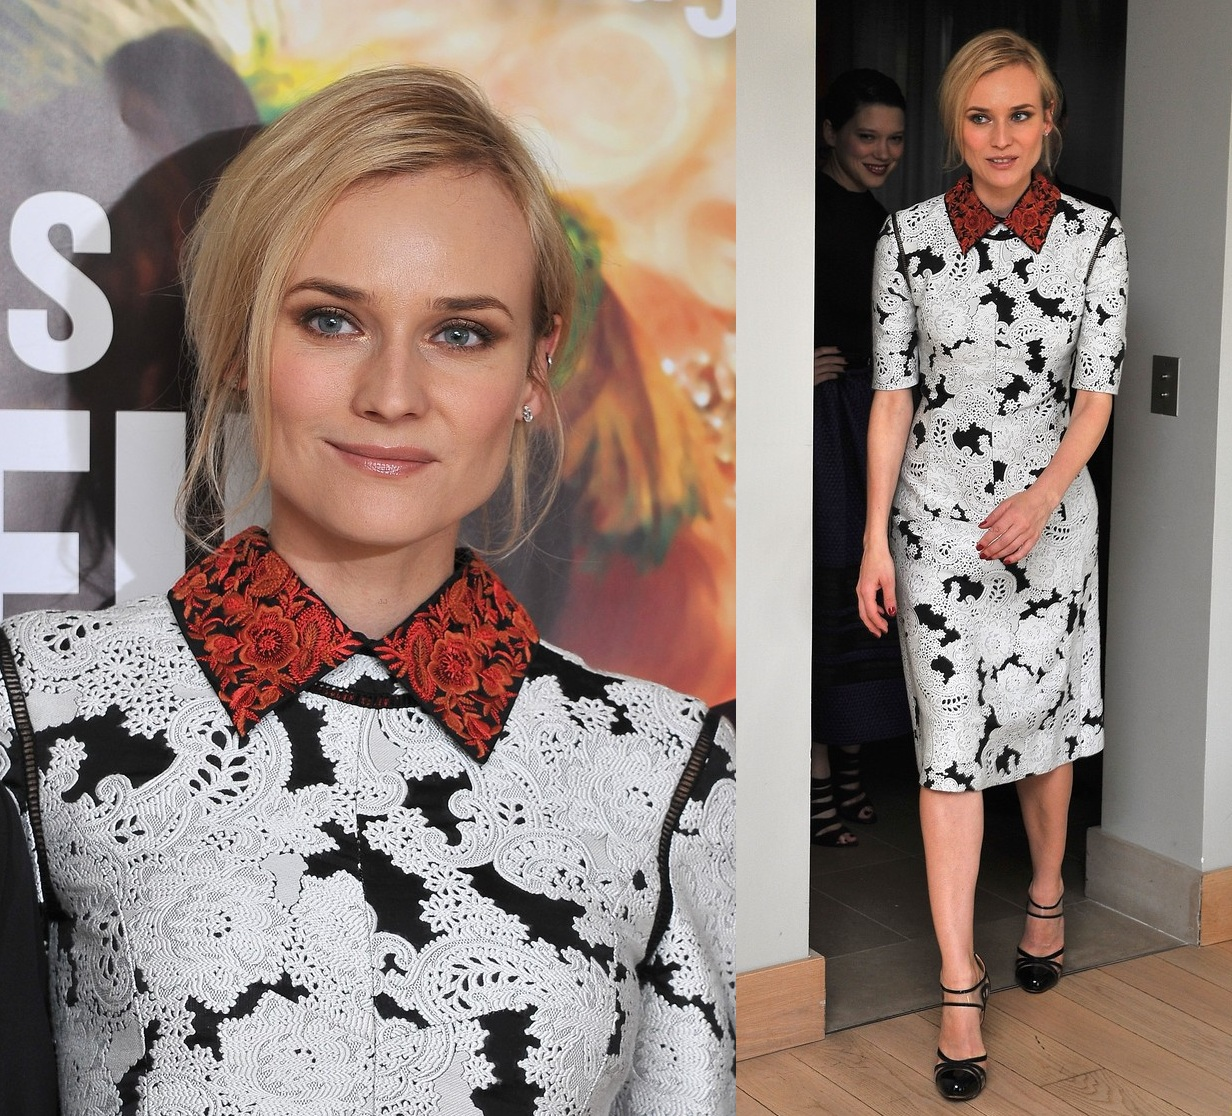 http://2.bp.blogspot.com/-8453niKlkao/T2Ns5WQMpSI/AAAAAAAAFk8/paHlZHgzxh0/s1600/diane-kruger+in+derek+lam+fall+2012-farewell-my-queen-photo-call-paris.jpg